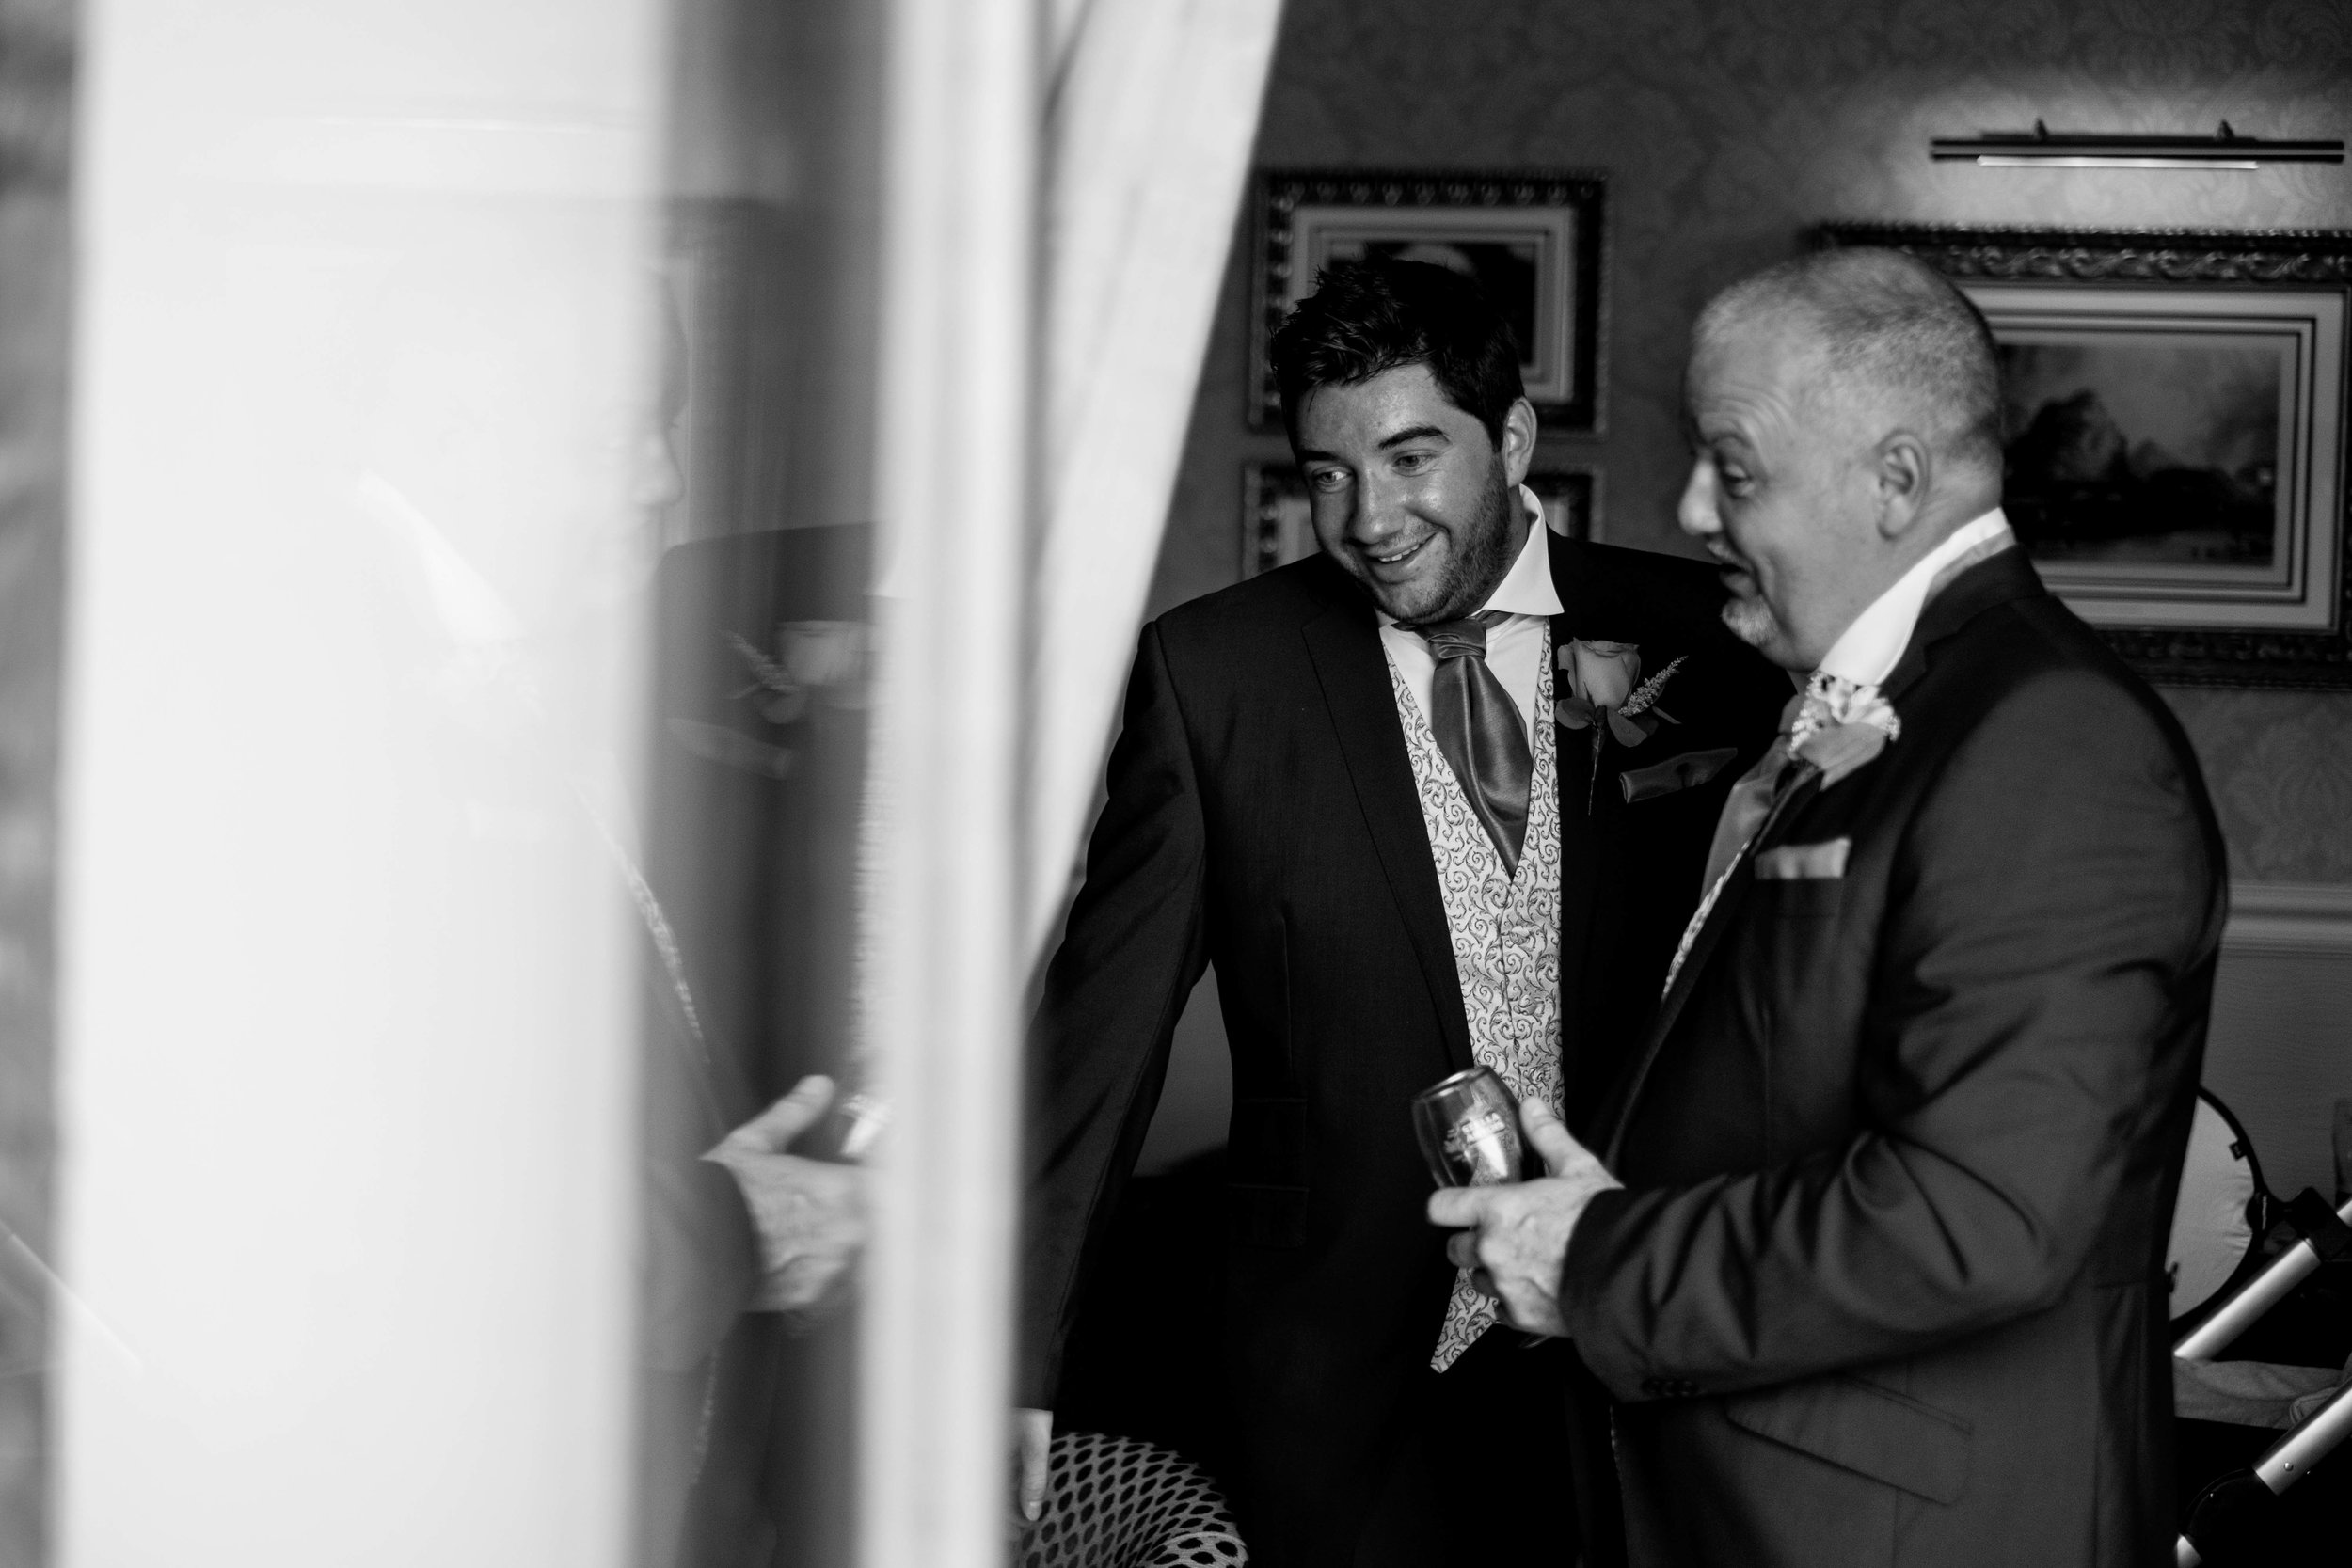 The groom chats with the registrar before the ceremony